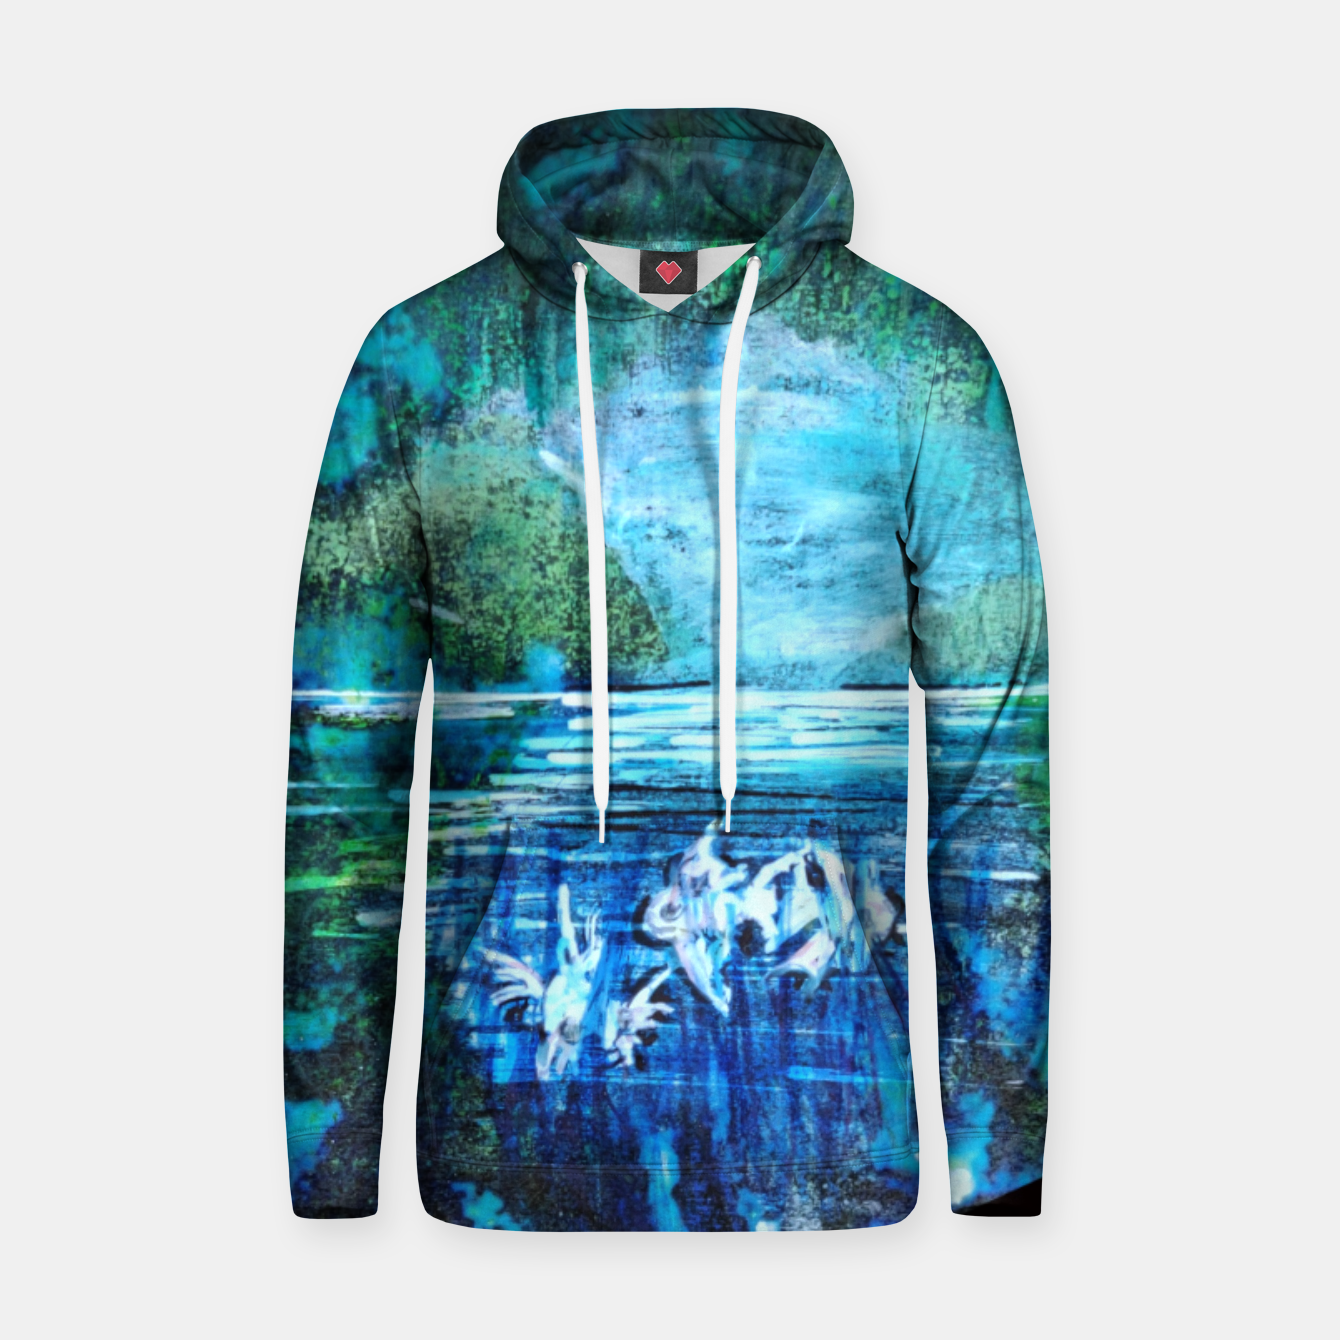 Image of lost and found world 2 brain art for paratissima 19 Yulia A Korneva mri immage Hoodie - Live Heroes